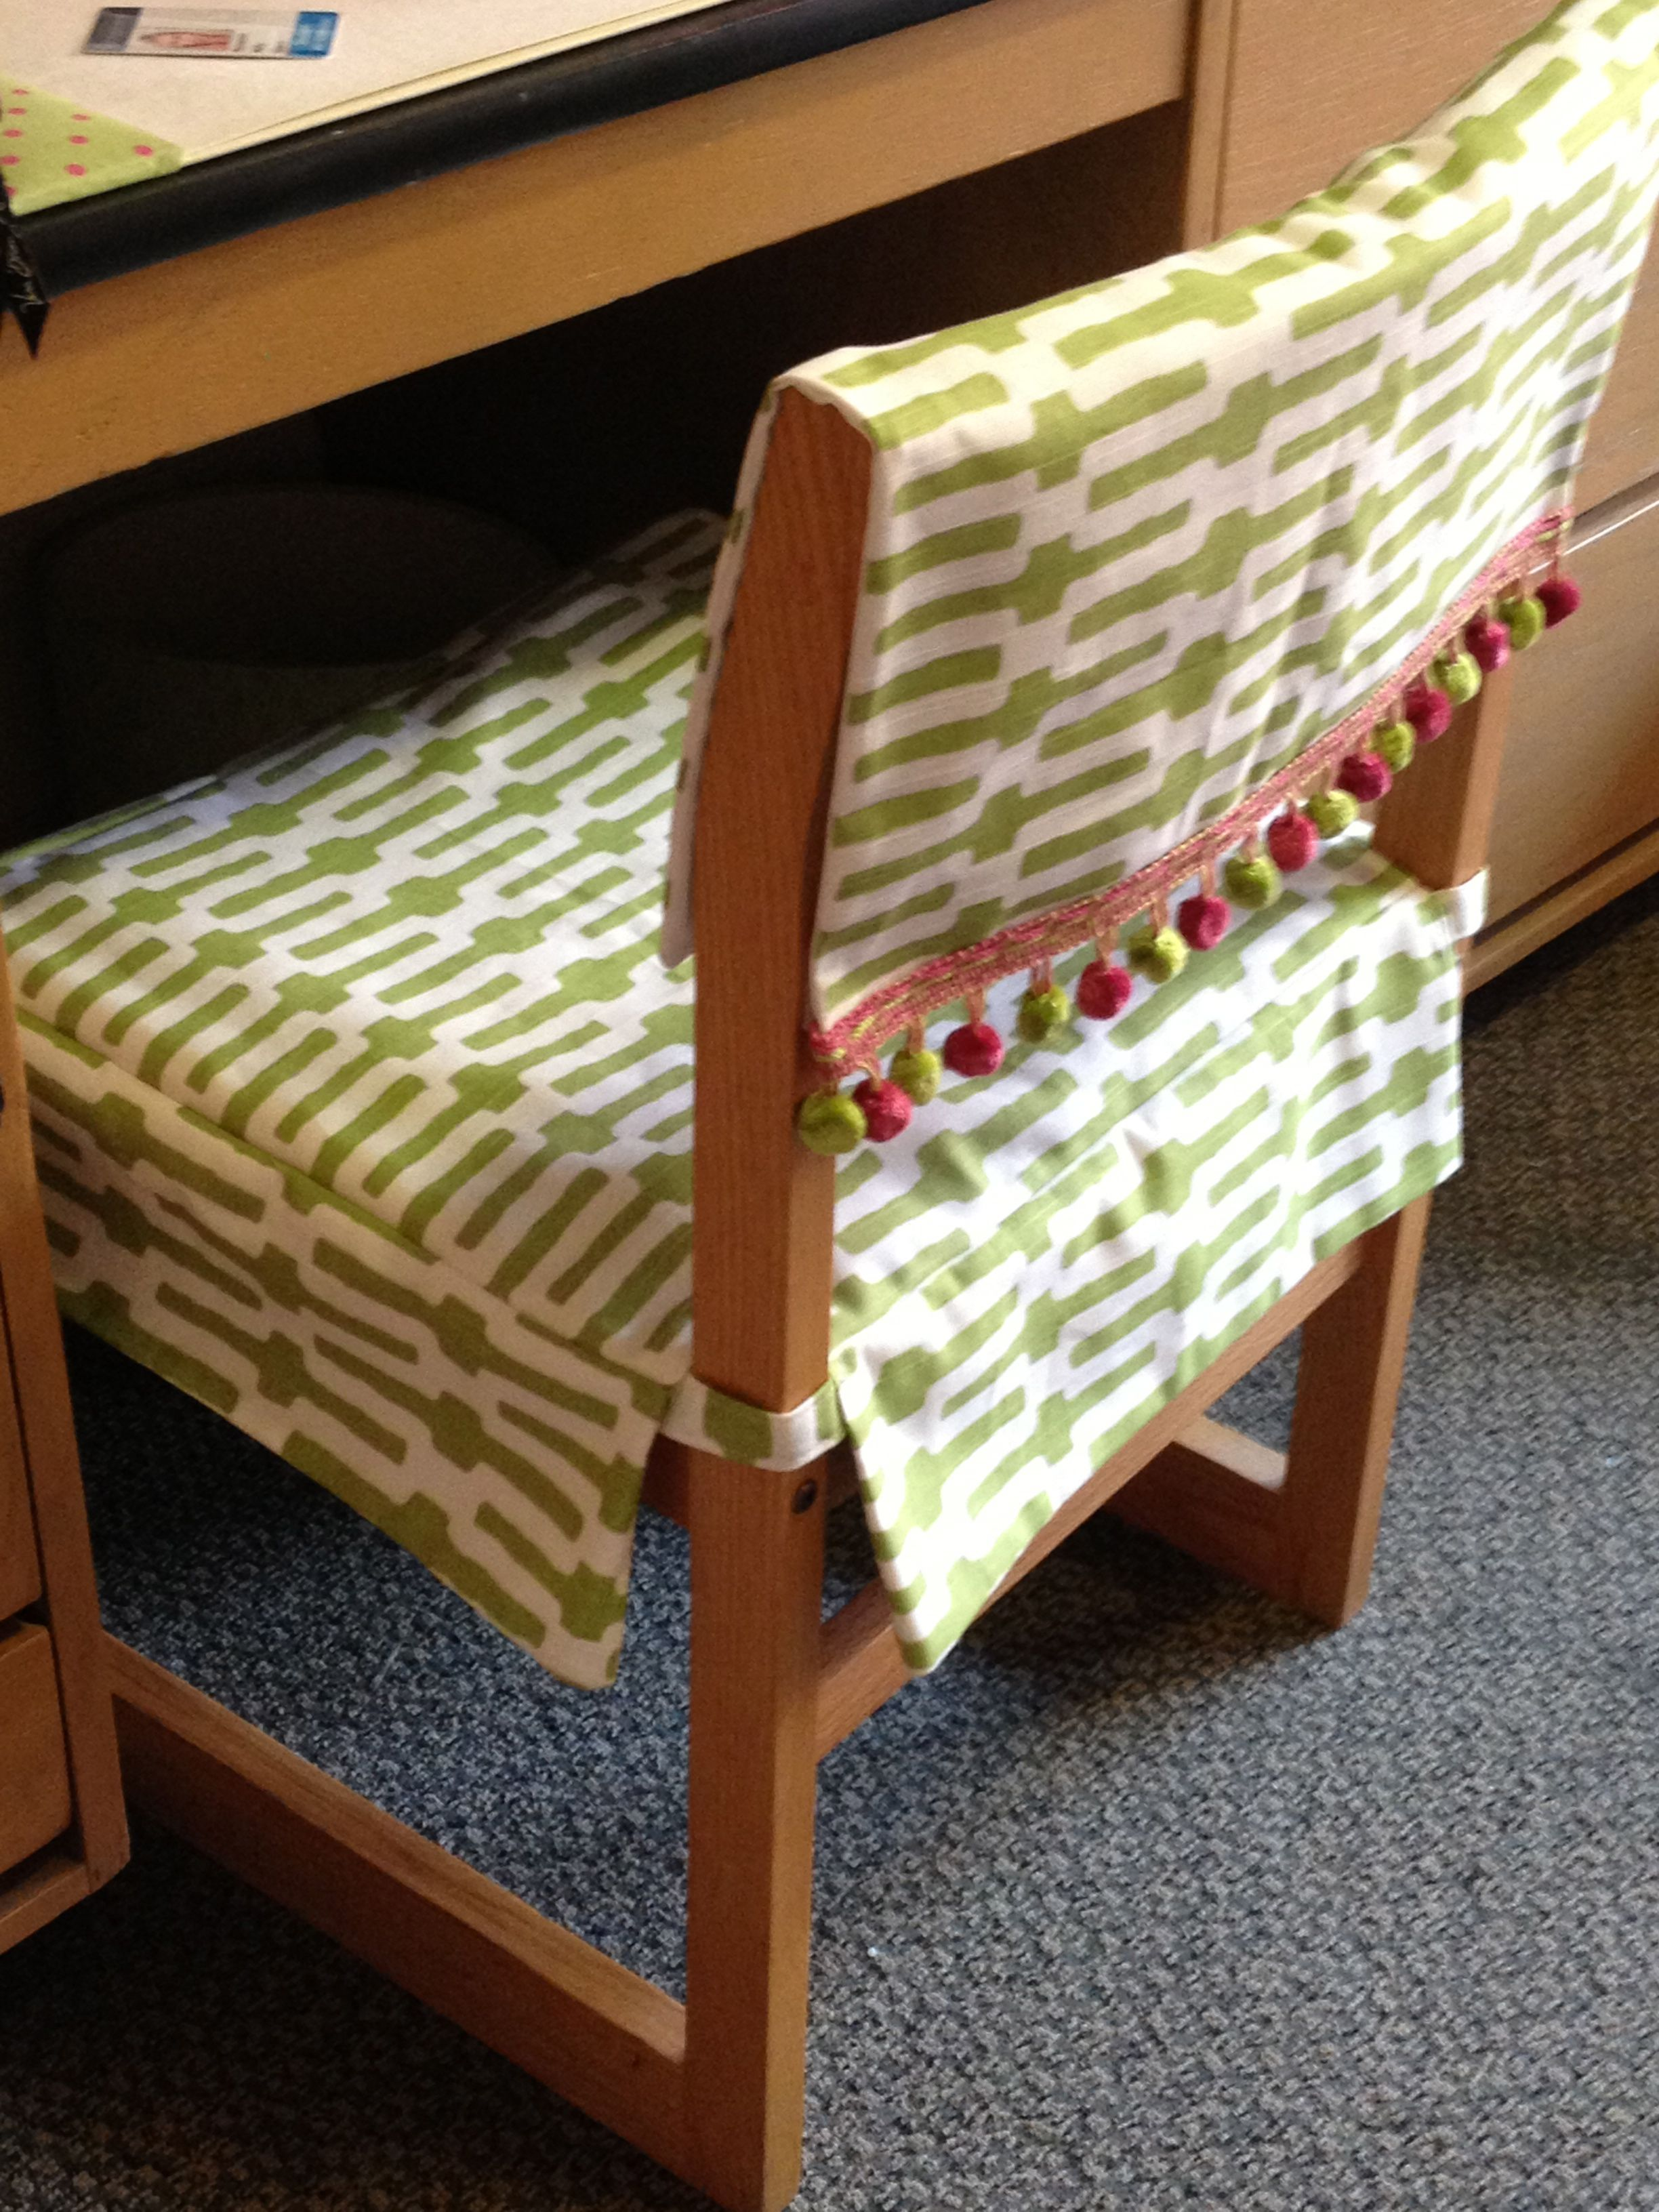 Dorm Chairs My Roommate 39s Mom Made Us These Awesome Desk Chair Covers